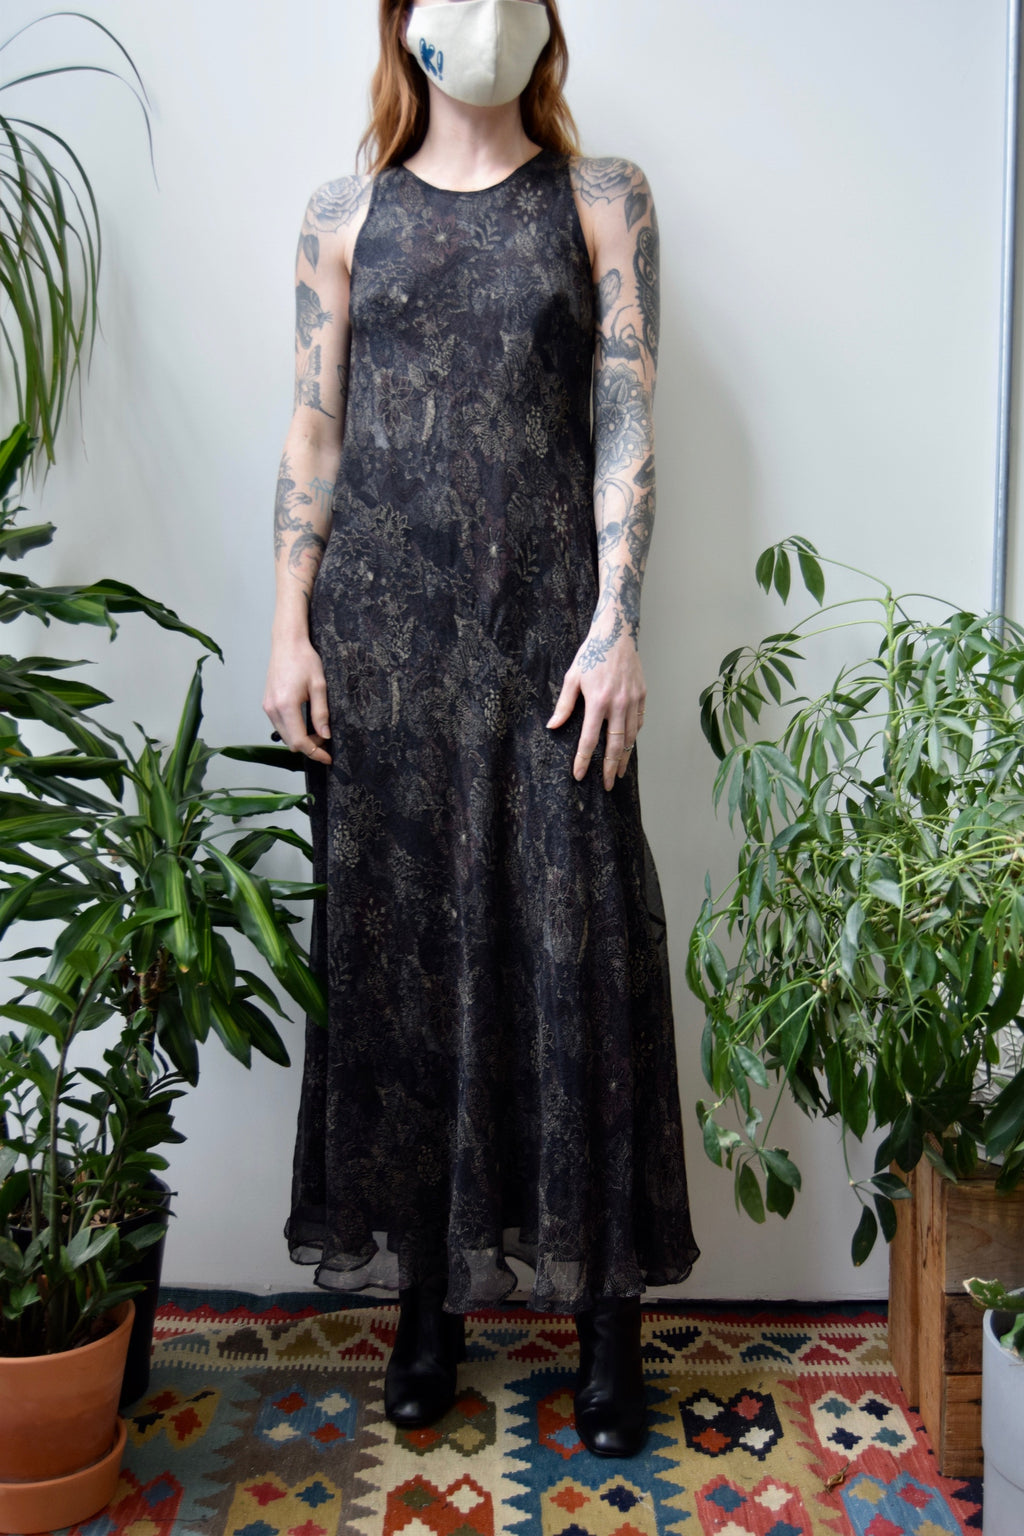 Nineties Black Gauzy Silk Dress